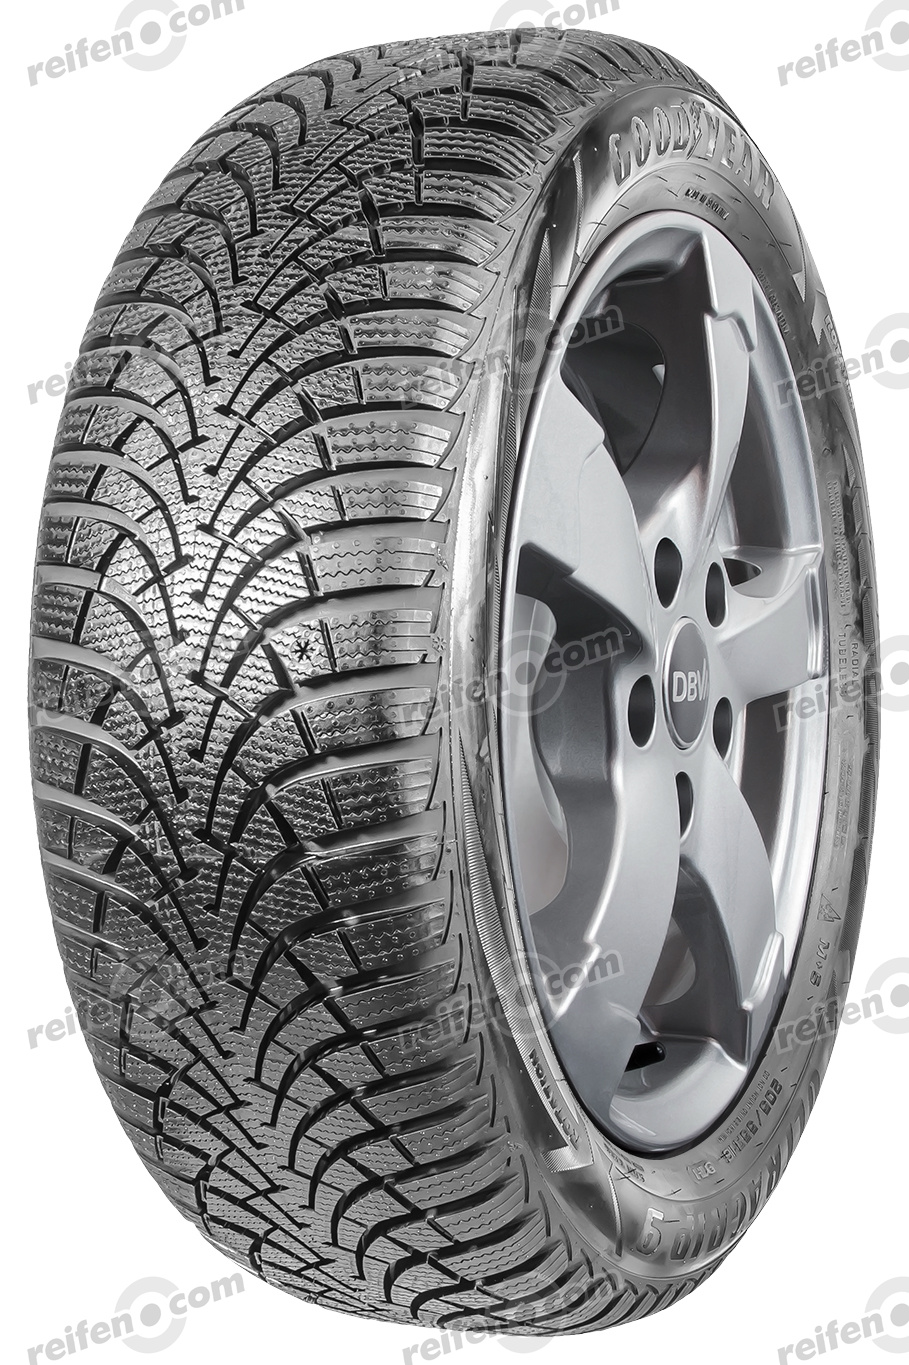 205/55 R16 91H Ultra Grip 9 MS  Ultra Grip 9 MS